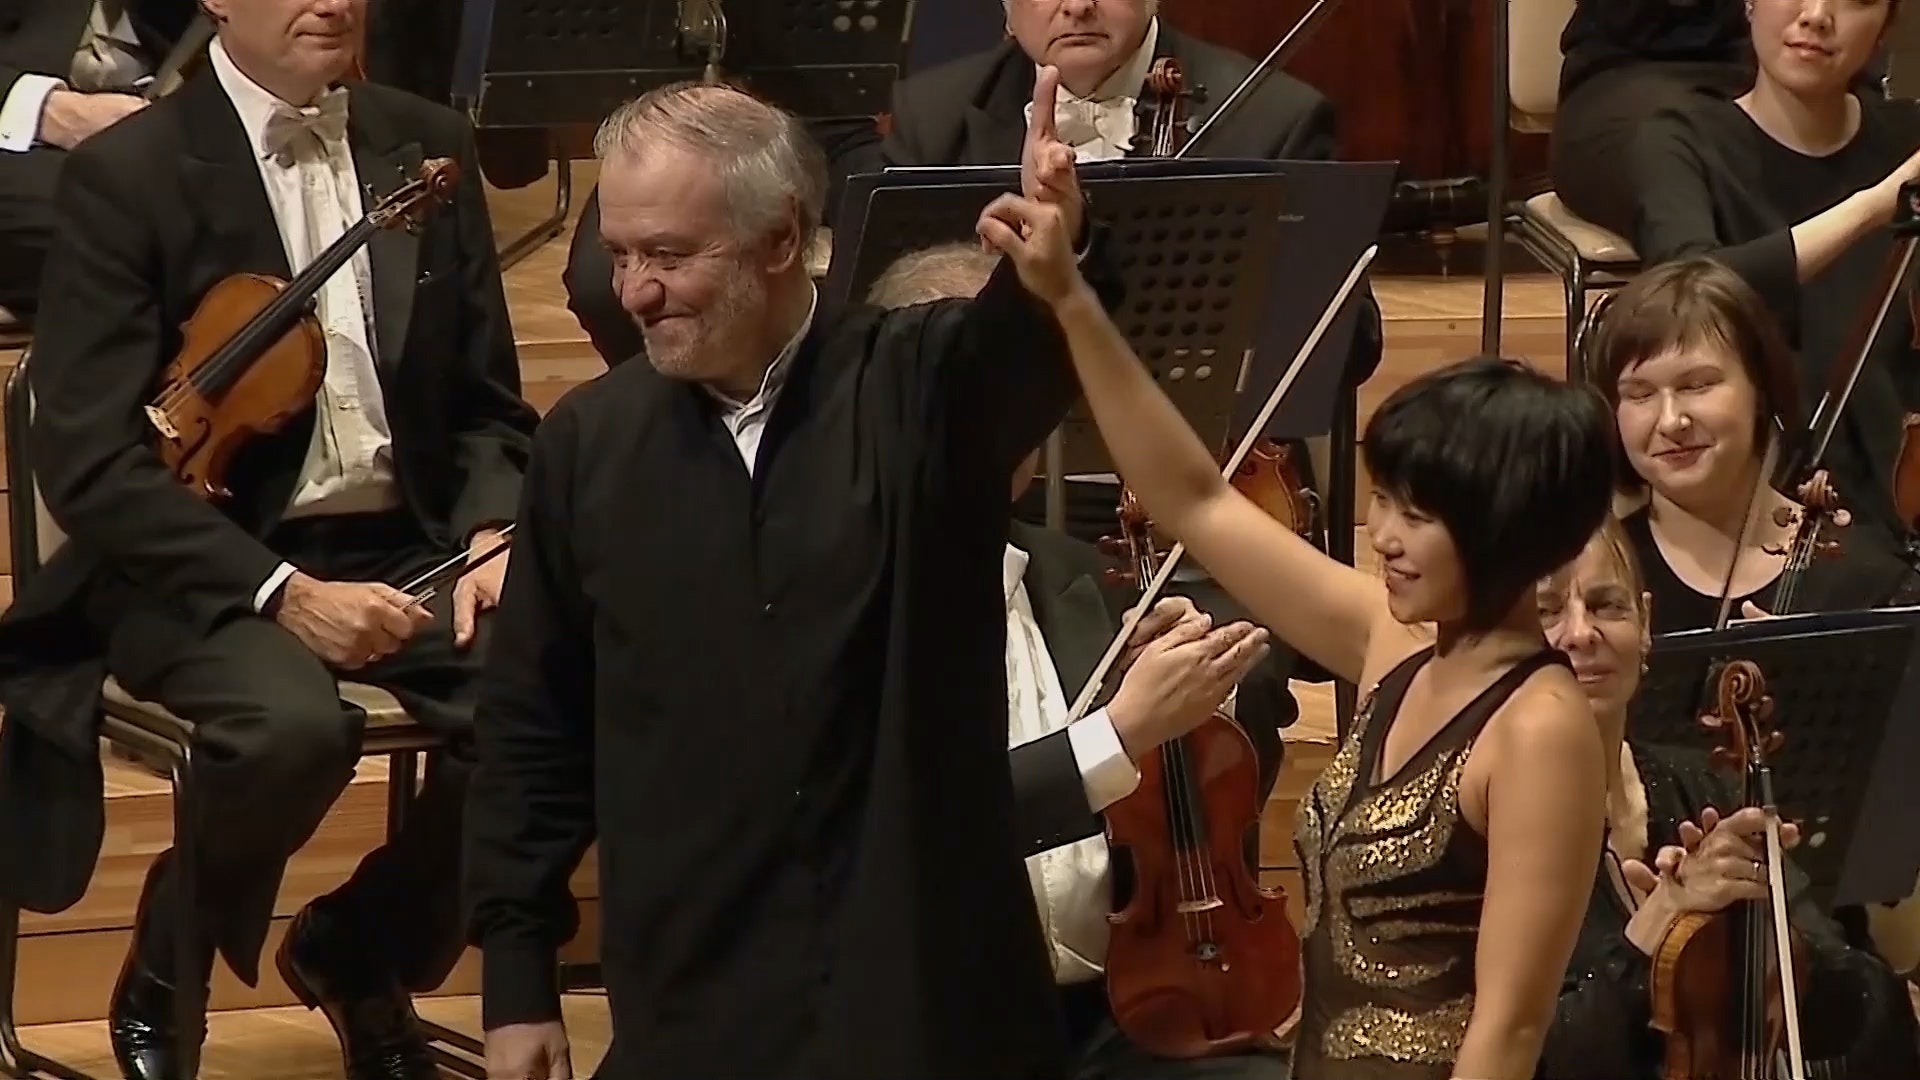 #MPhil125 Valery Gergiev conducts Brahms and Mahler – With Yuja Wang